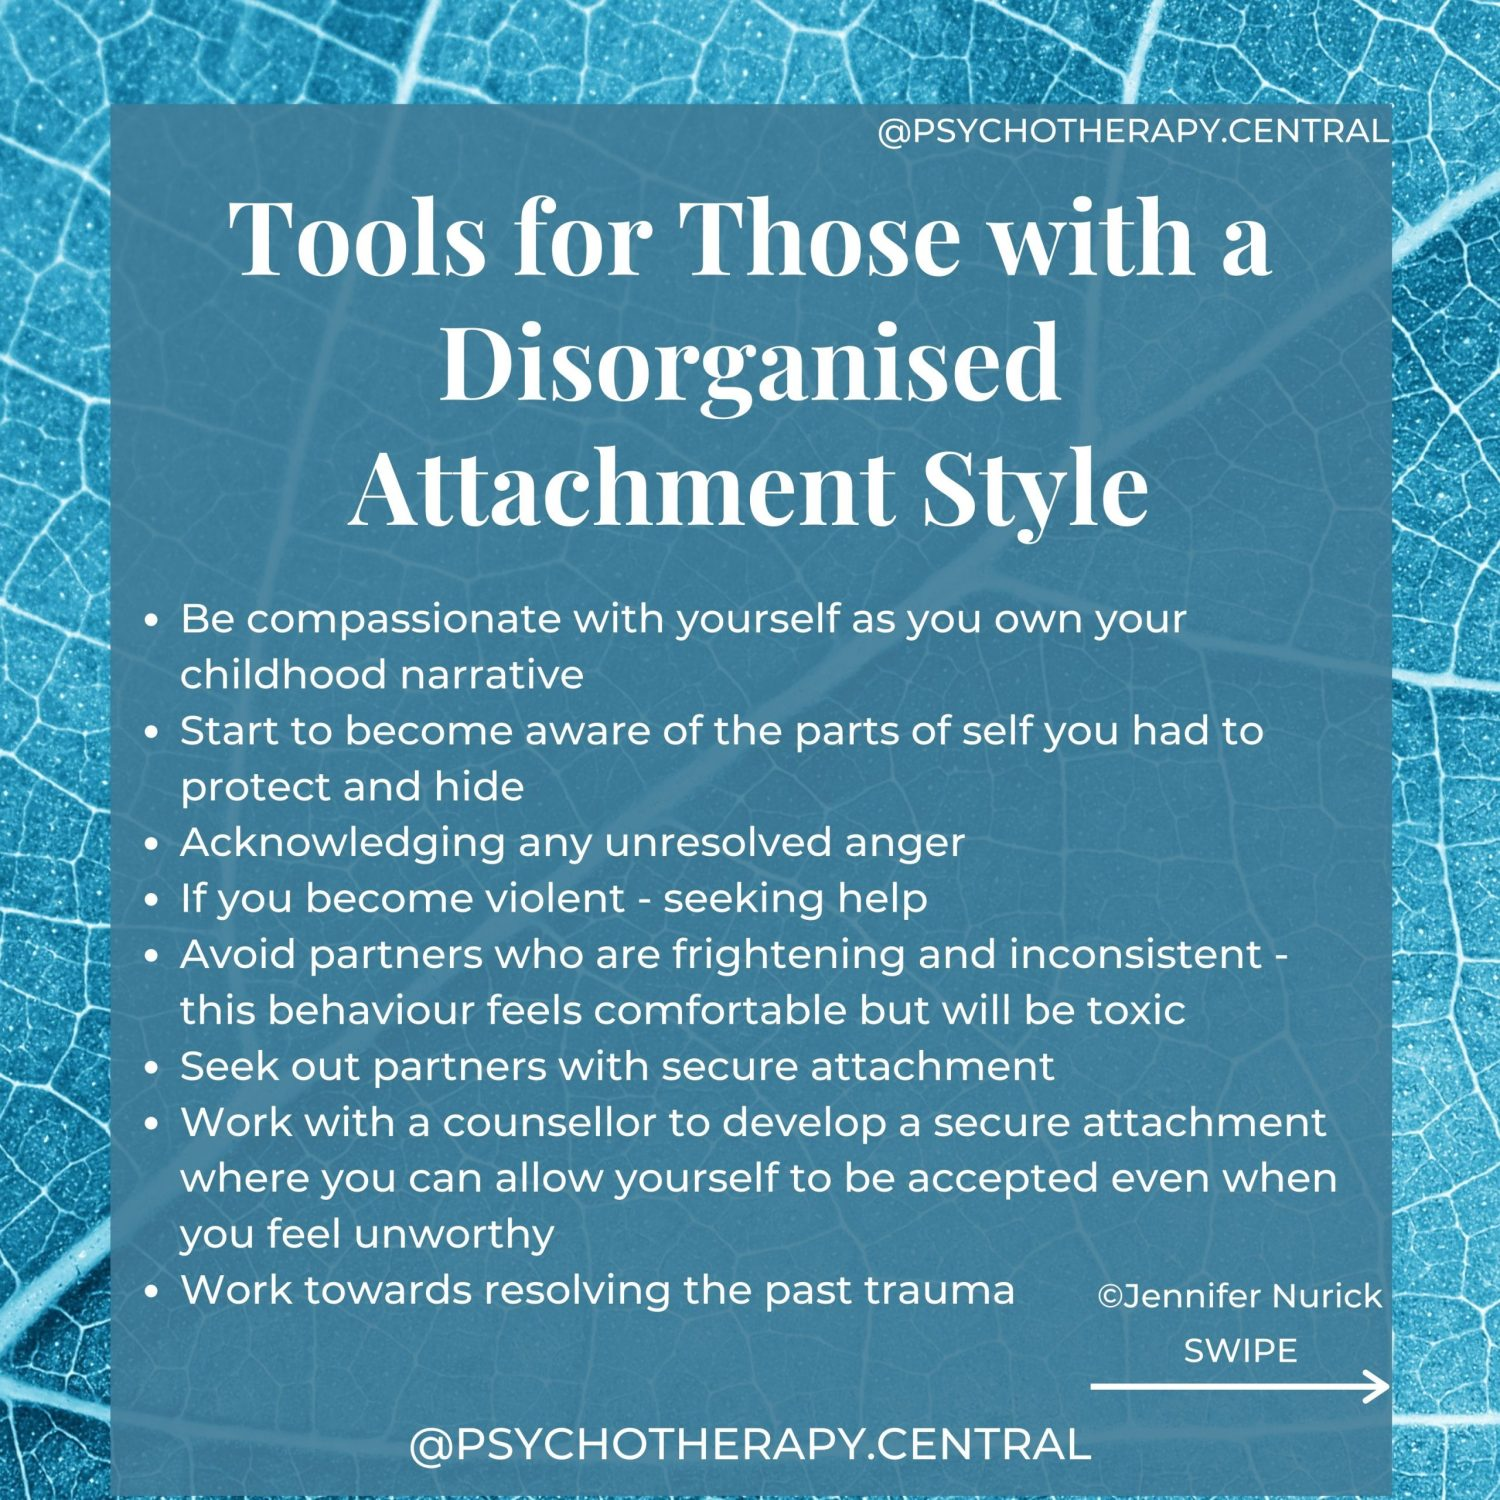 Tools for Those with a Disorganised Attachment Style